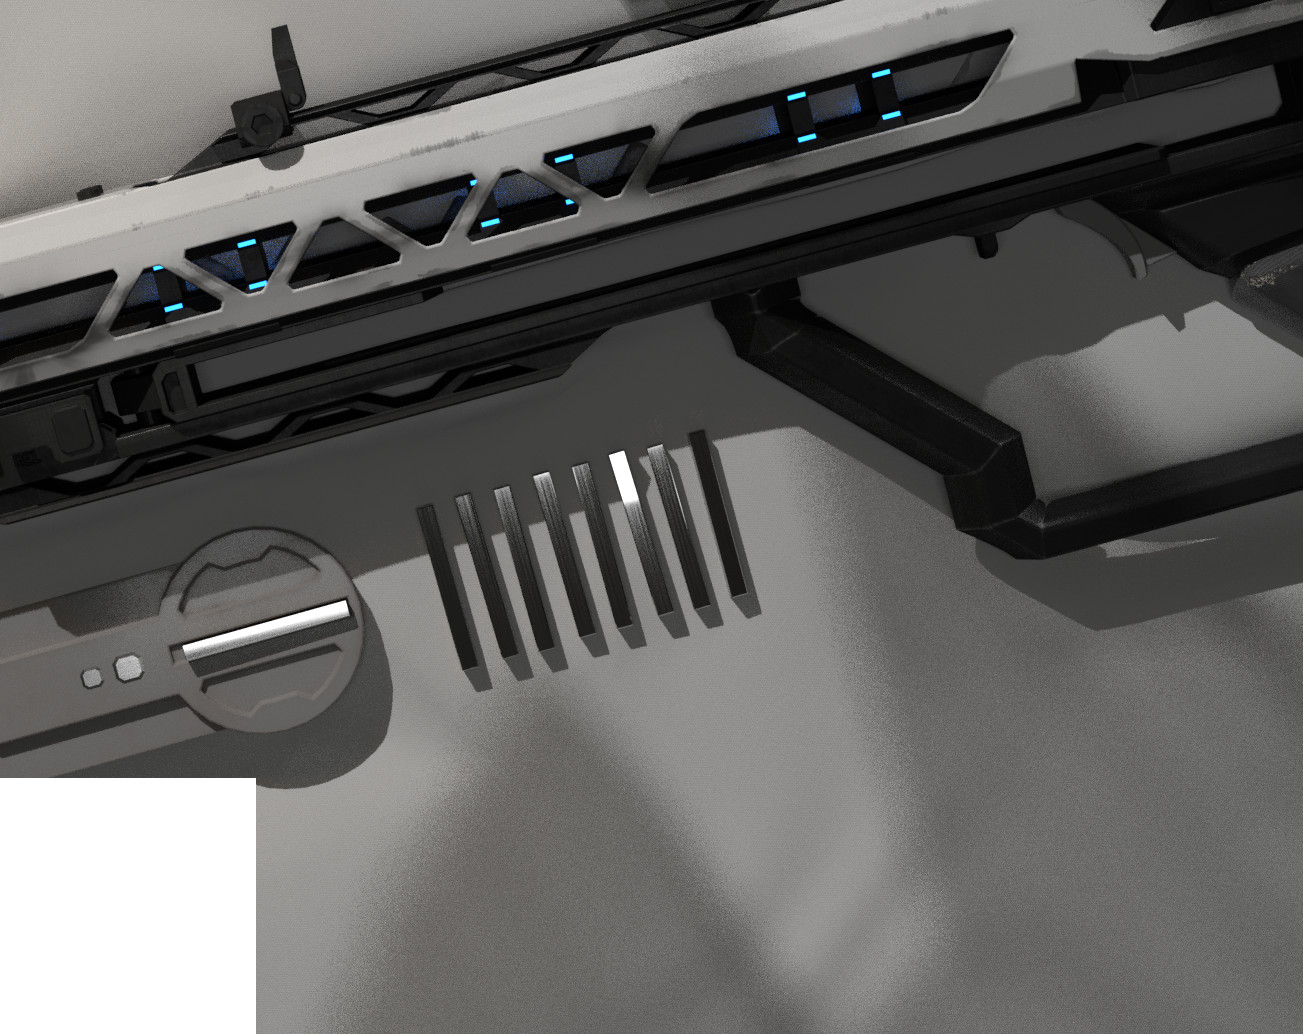 """A test render for an original composition layout of the final render, showing the magazine in better detail as well as the railgun """"cores"""" that are fired. I could not get the cloth and lighting to work though, so I settled with floating-in-the-void."""